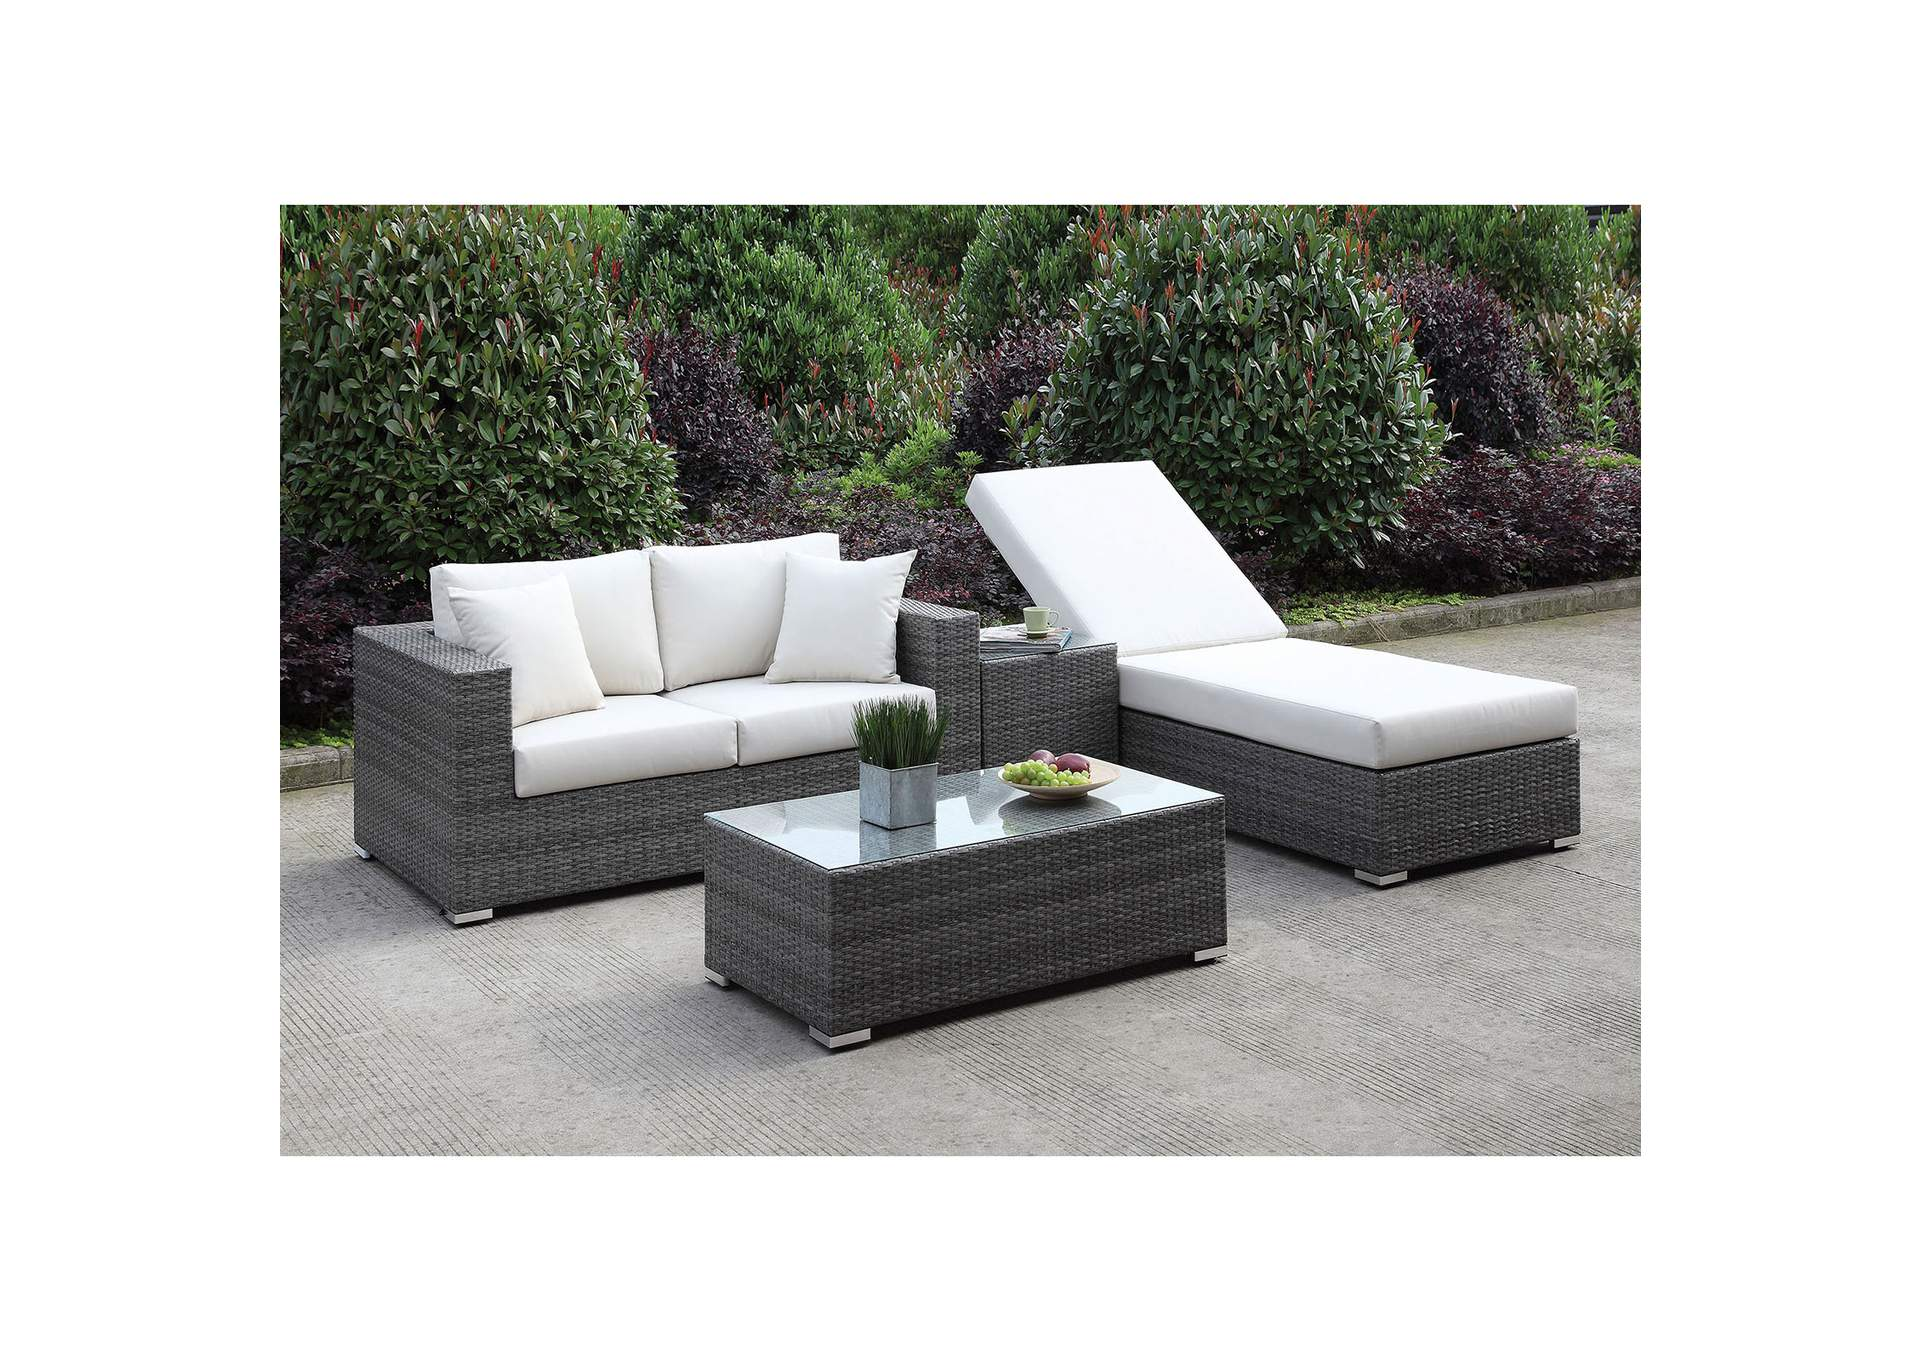 Somani Light Gray/Ivory Wicker Patio Set (Loveseat, ADJ Chaise, End Table & Coffee Table),Furniture of America